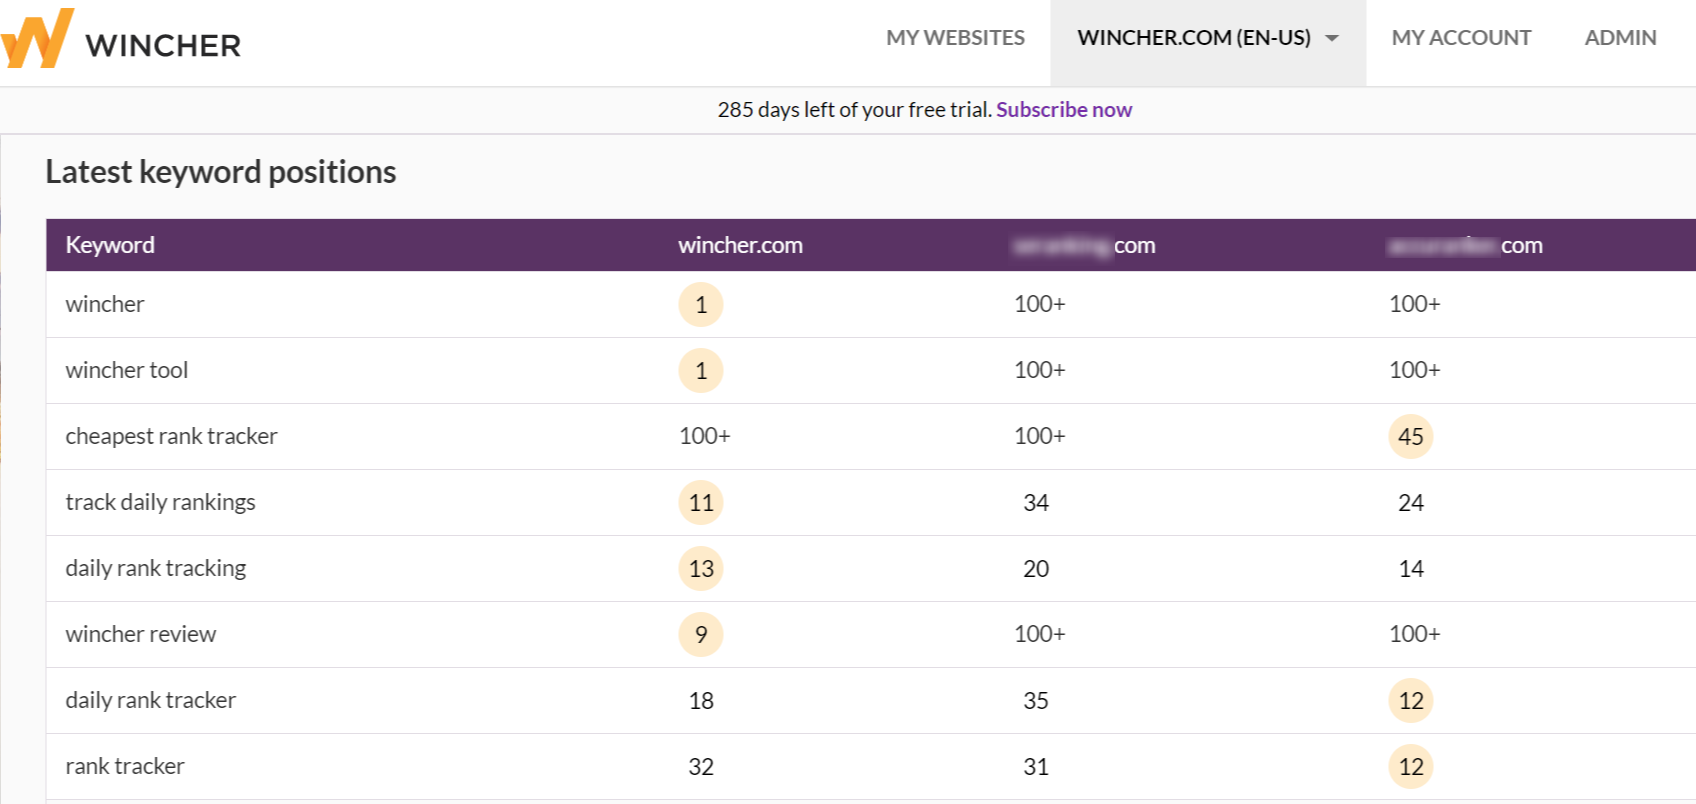 Wincher - Latest keyword positions